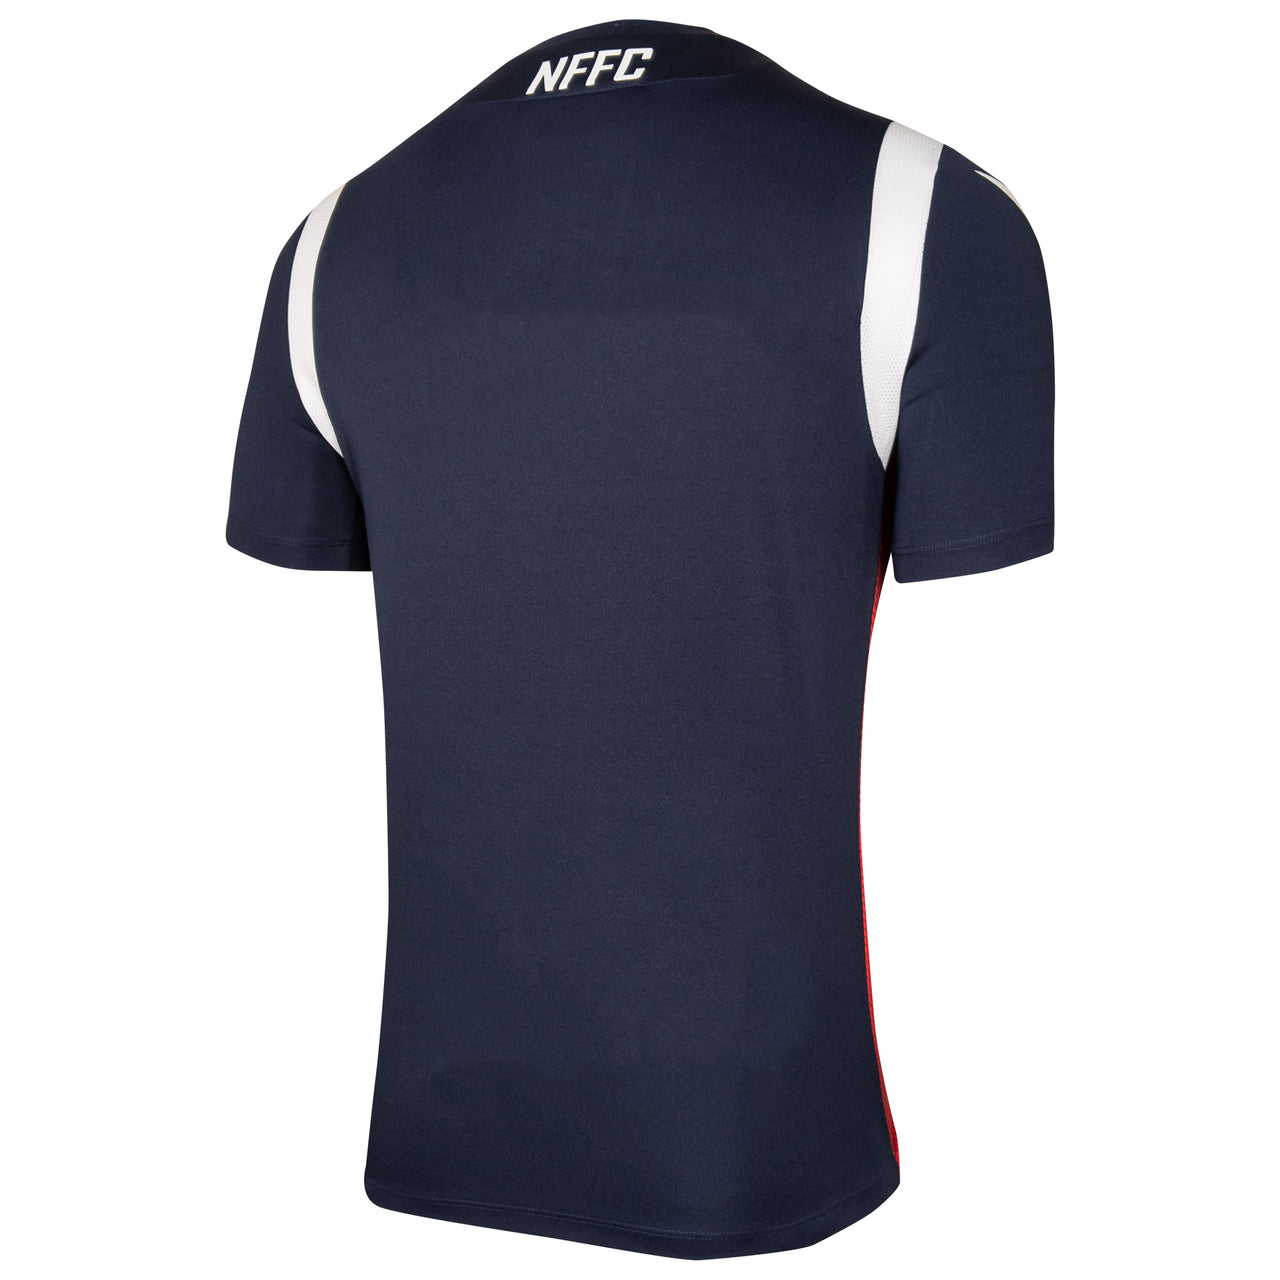 NFFC Mens Player Training Jersey 2020/21